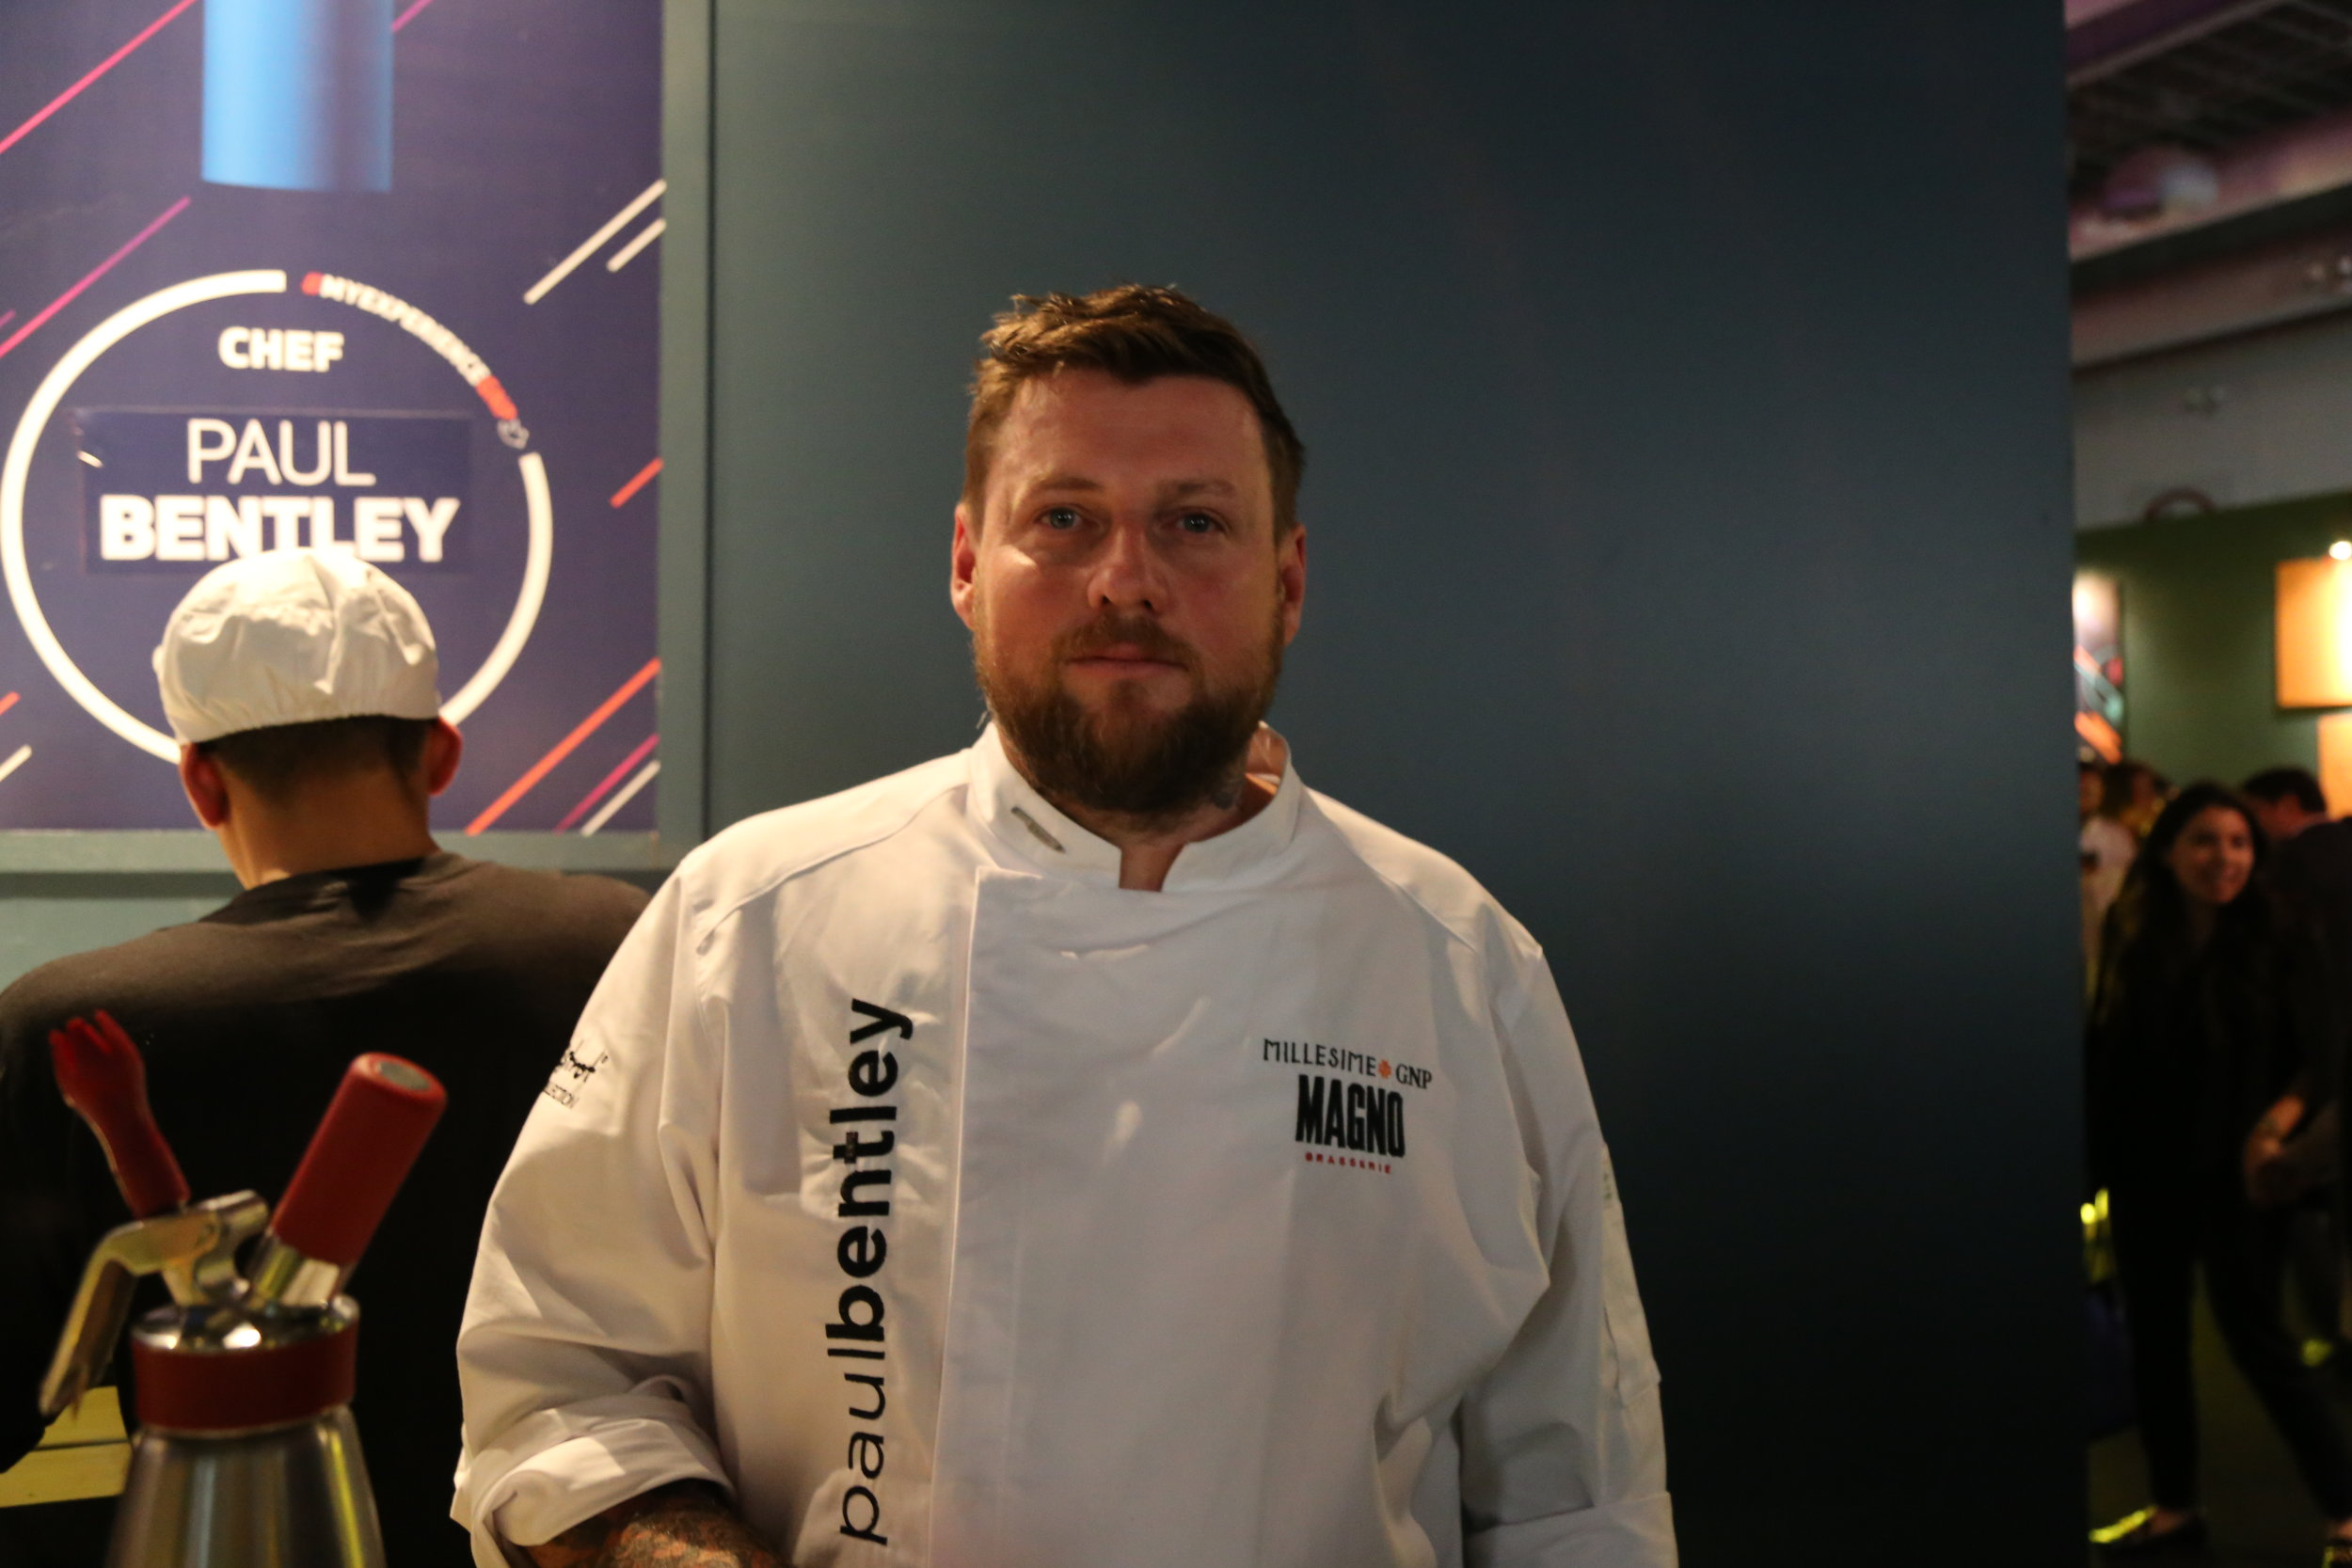 Paul Bentley, Australian chef of Guadalajara's superb  Magno Brasserie  was a returning invitee